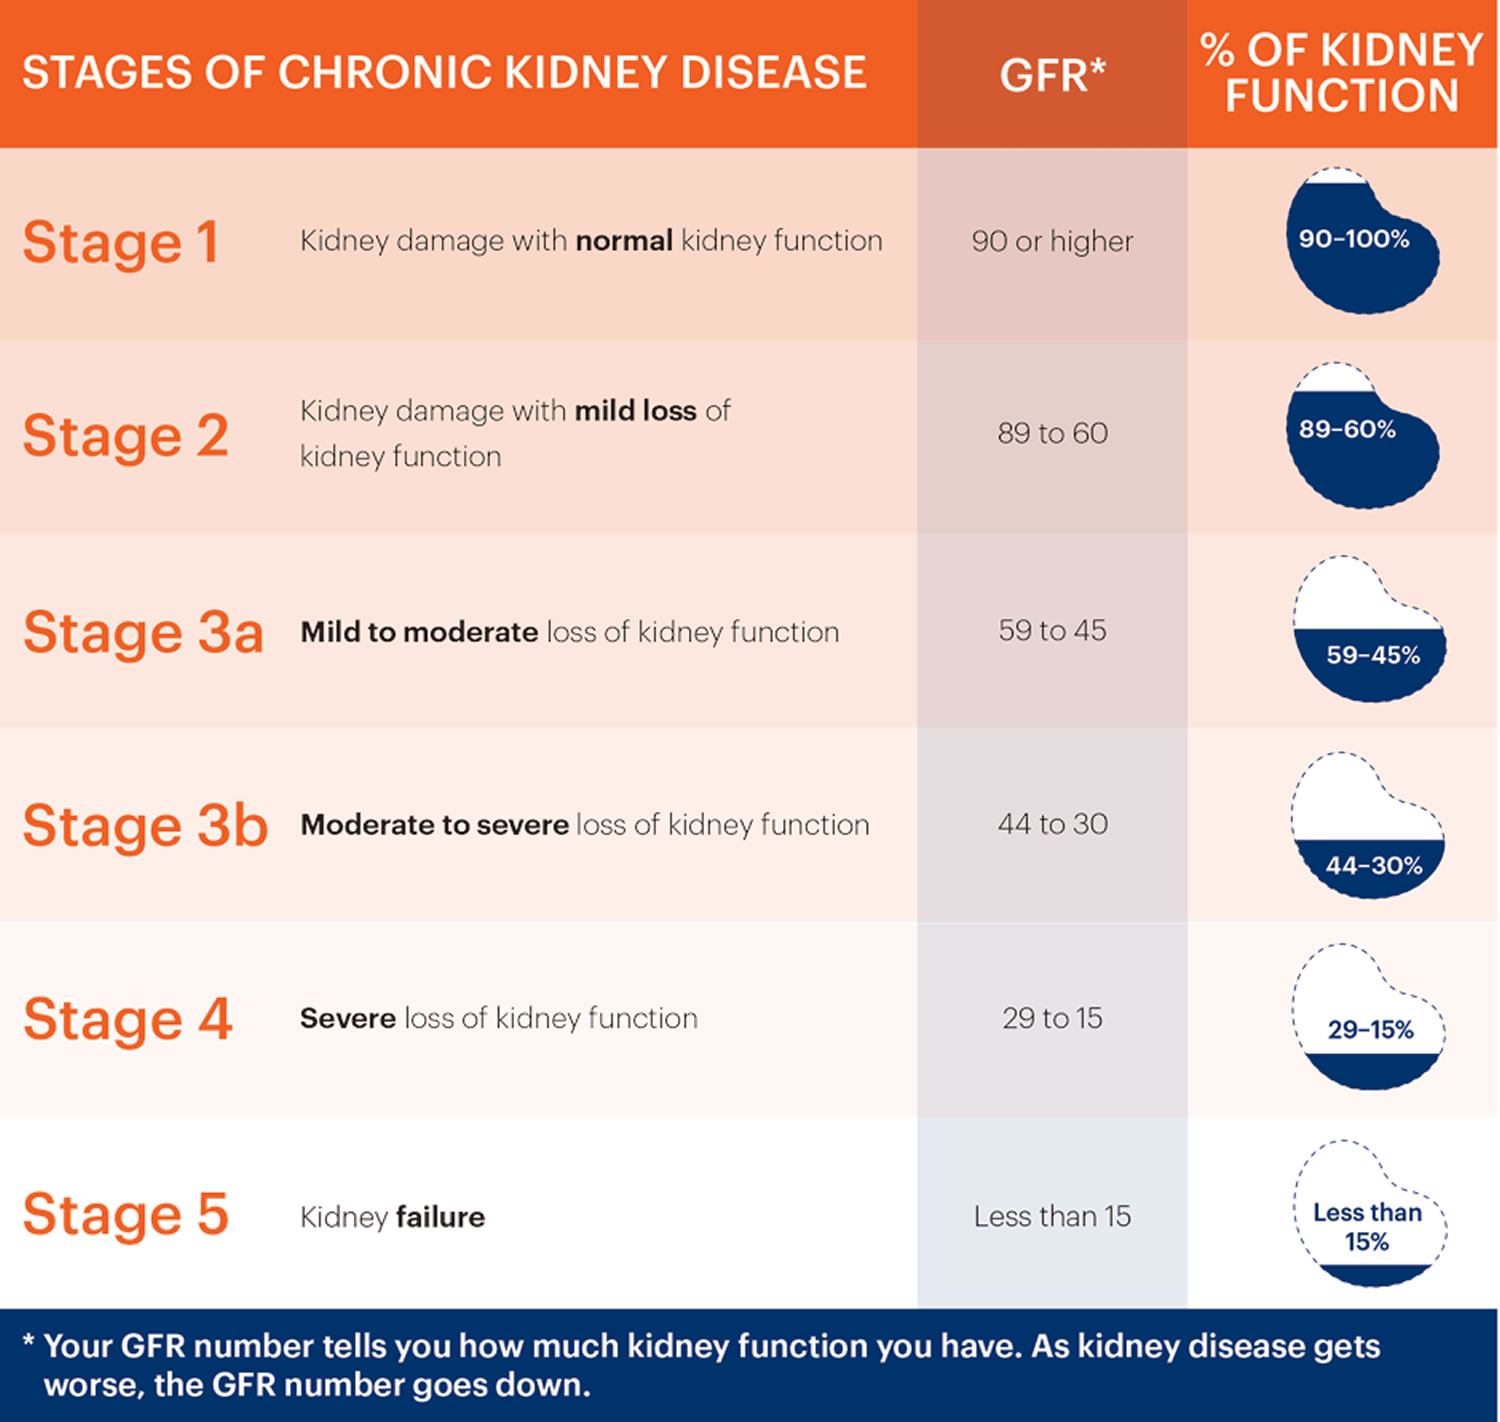 Stages-of-Chronic-Kidney-Disease